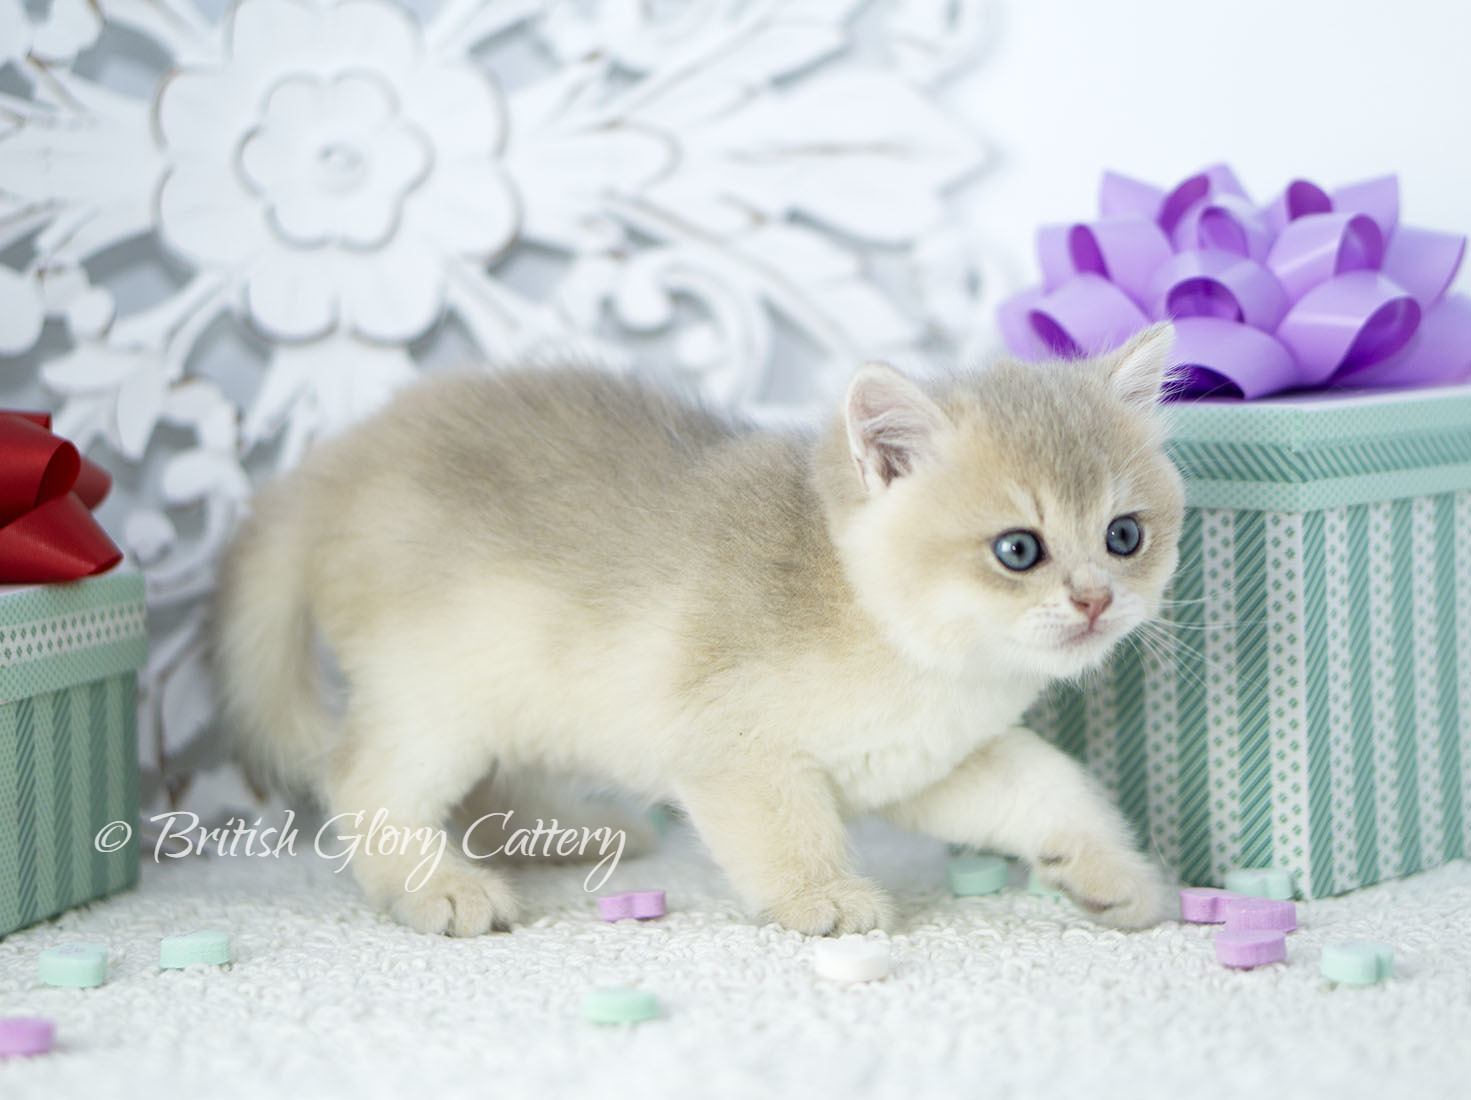 AVAILABLE KITTENS | United States | British Glory Cattery